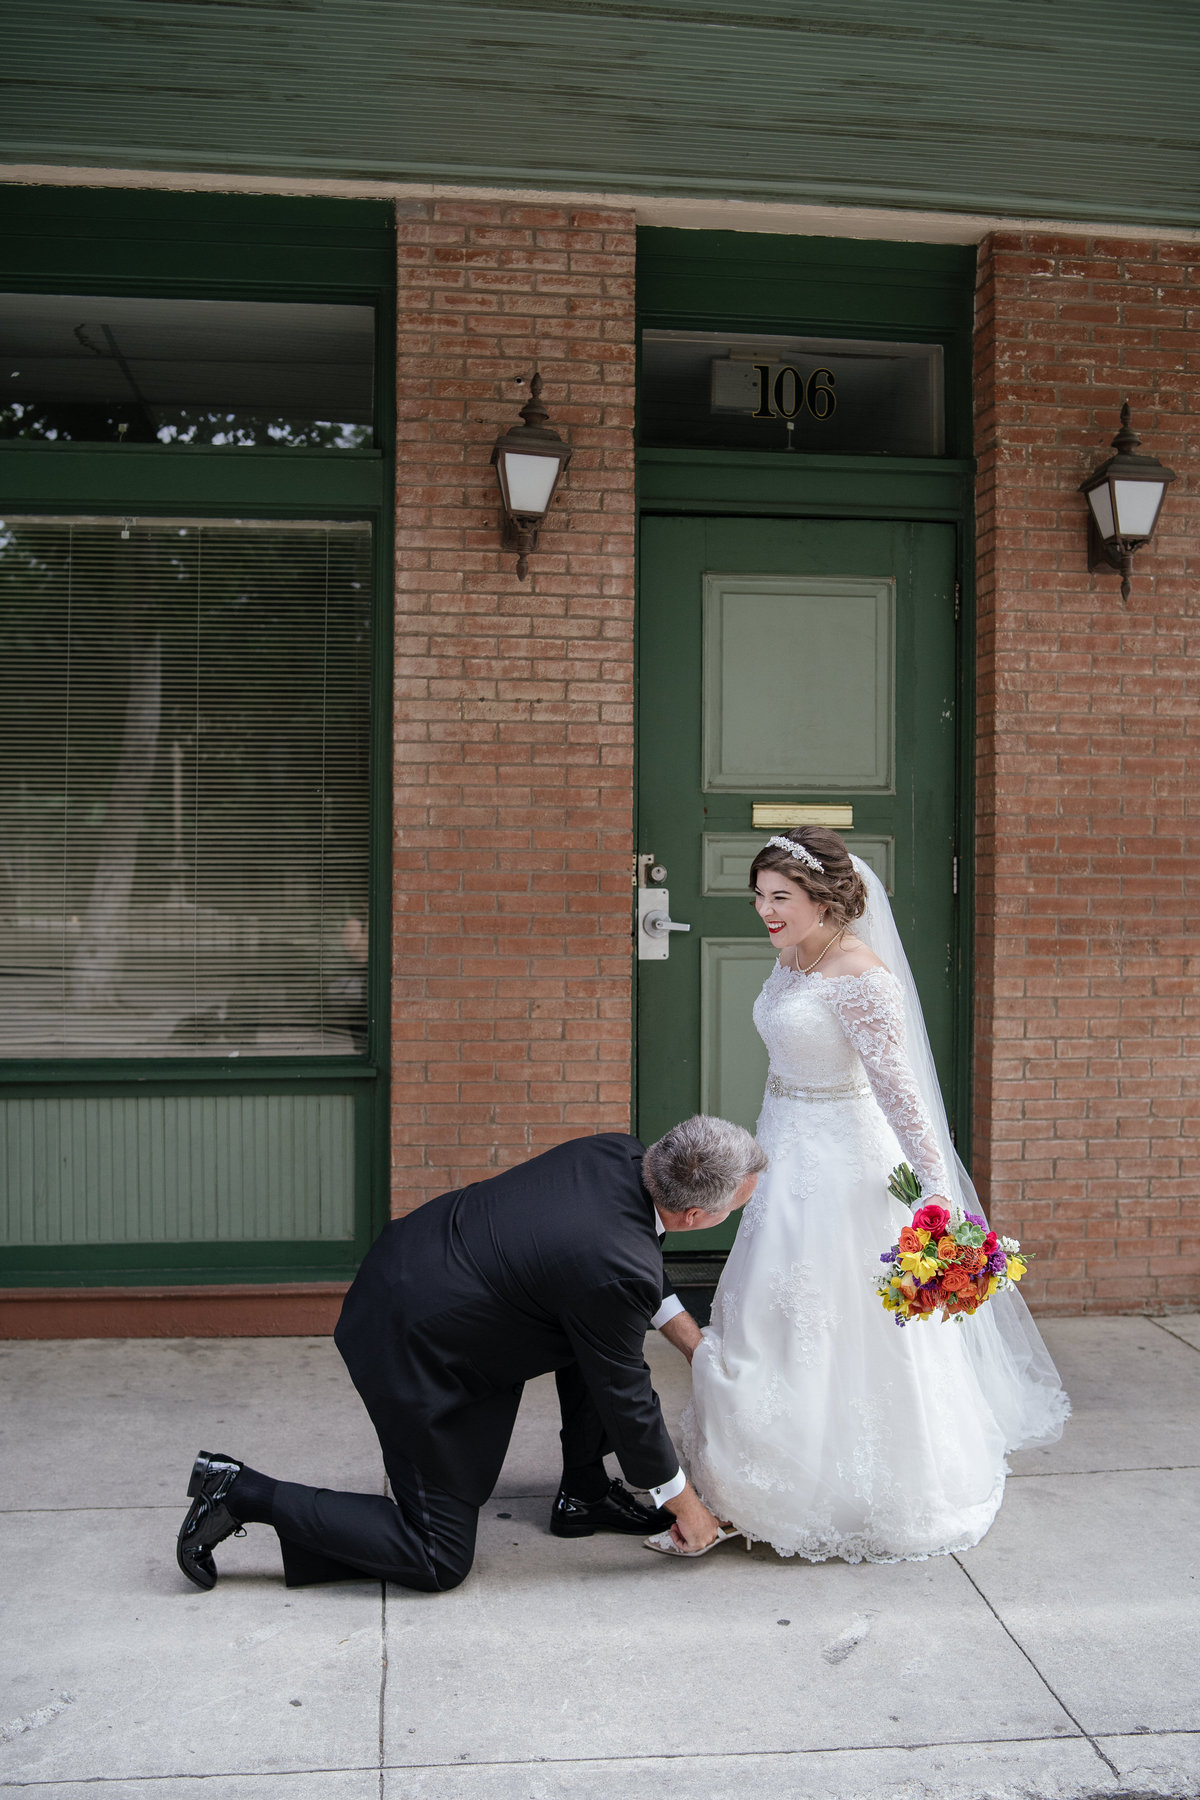 Father of bride putting a sixpence in brides shoe just before wedding ceremony at The Spire venue in downtown San Antonio